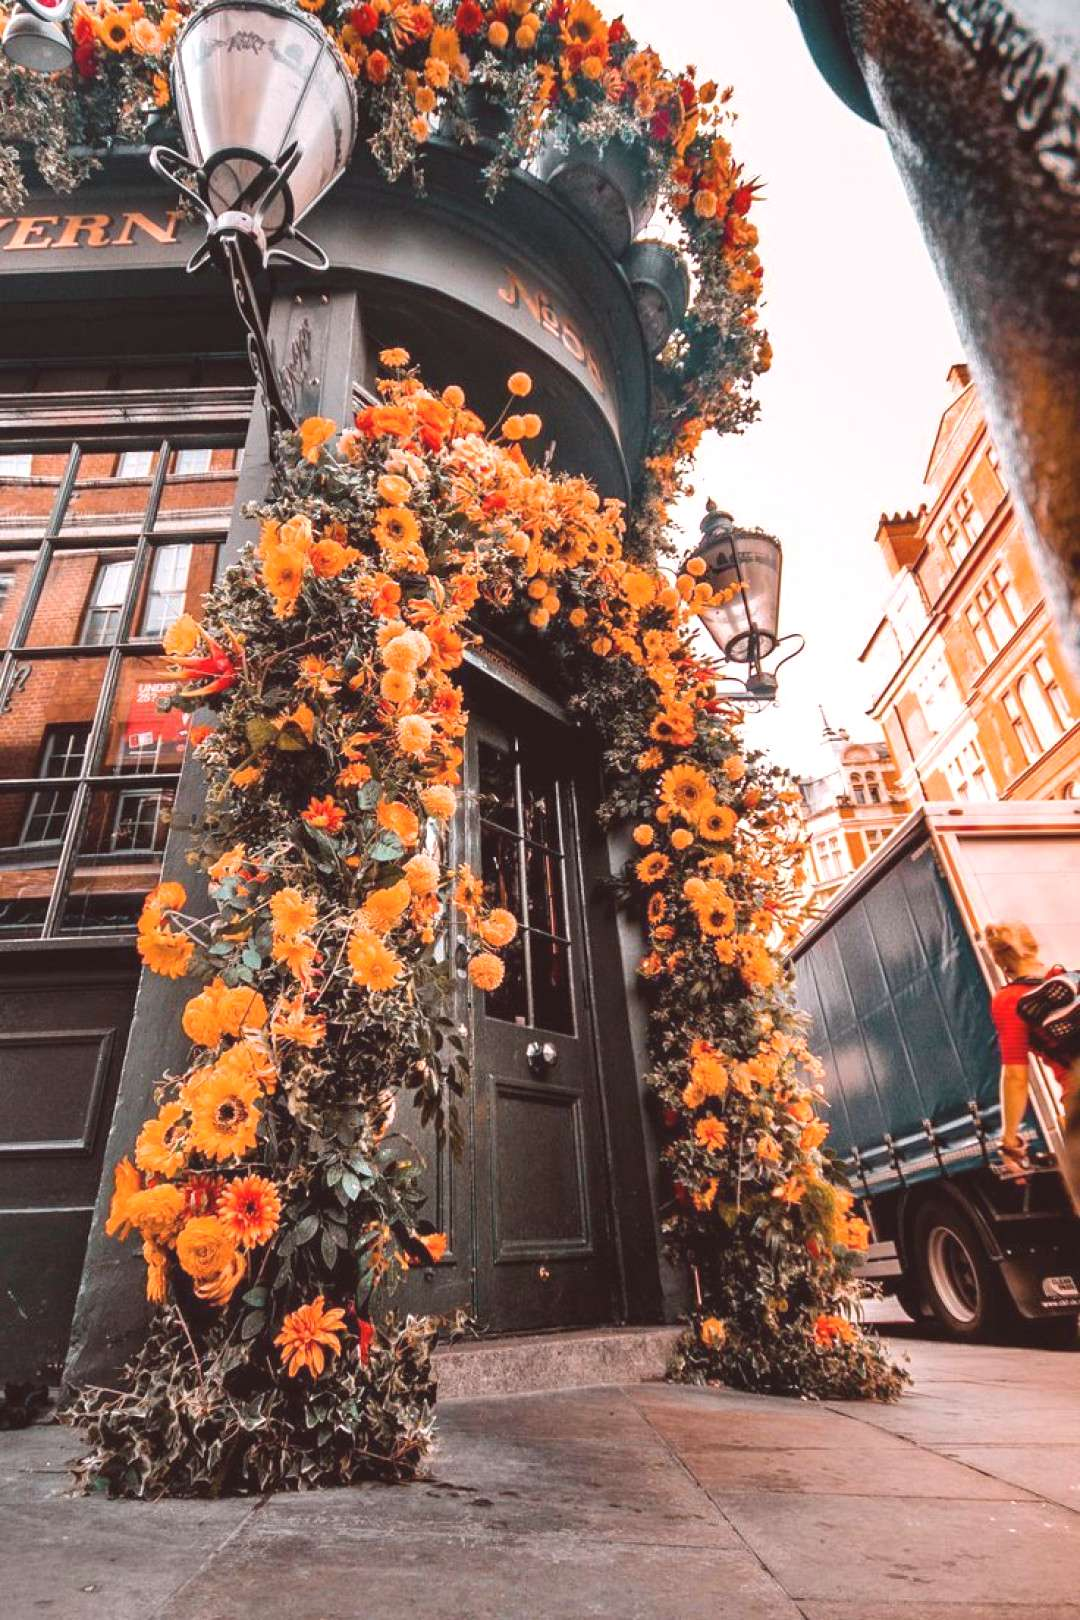 TOP LONDON FLOWERS! Mr fogg�s tavern is one of the most beautiful london flowers cafes to visit